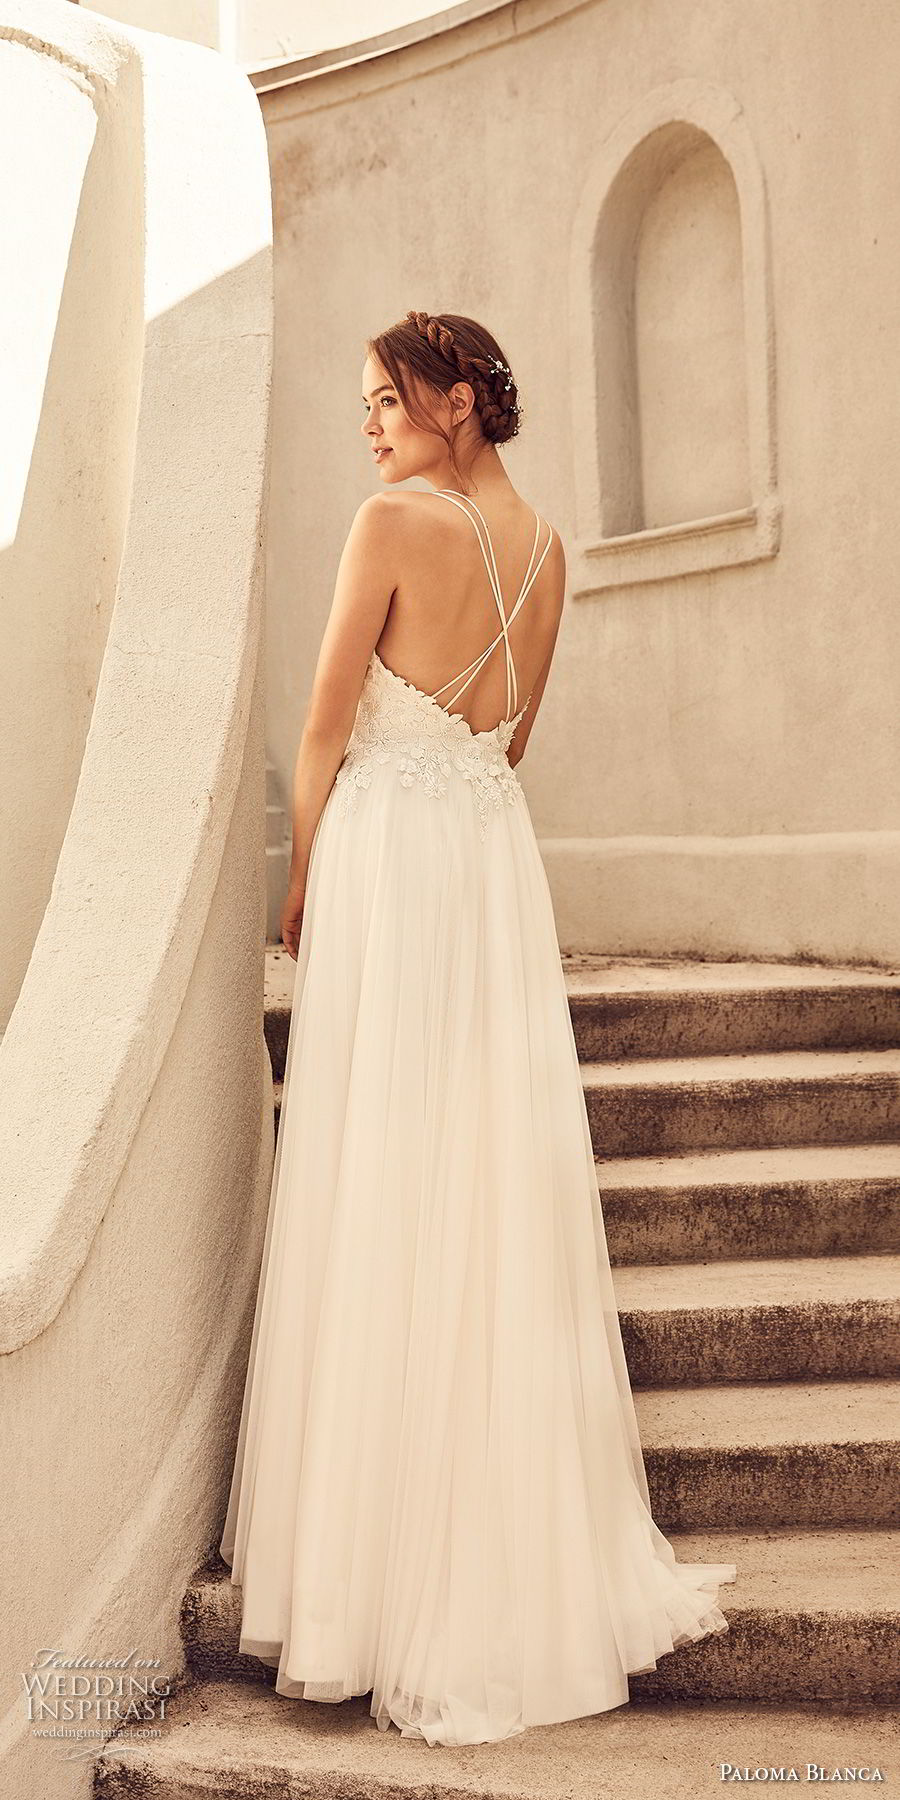 paloma blanca spring 2018 bridal sleeveless v neck heavily embellished bodice romantic soft a line wedding dress cross strap back sweep train (6) bv